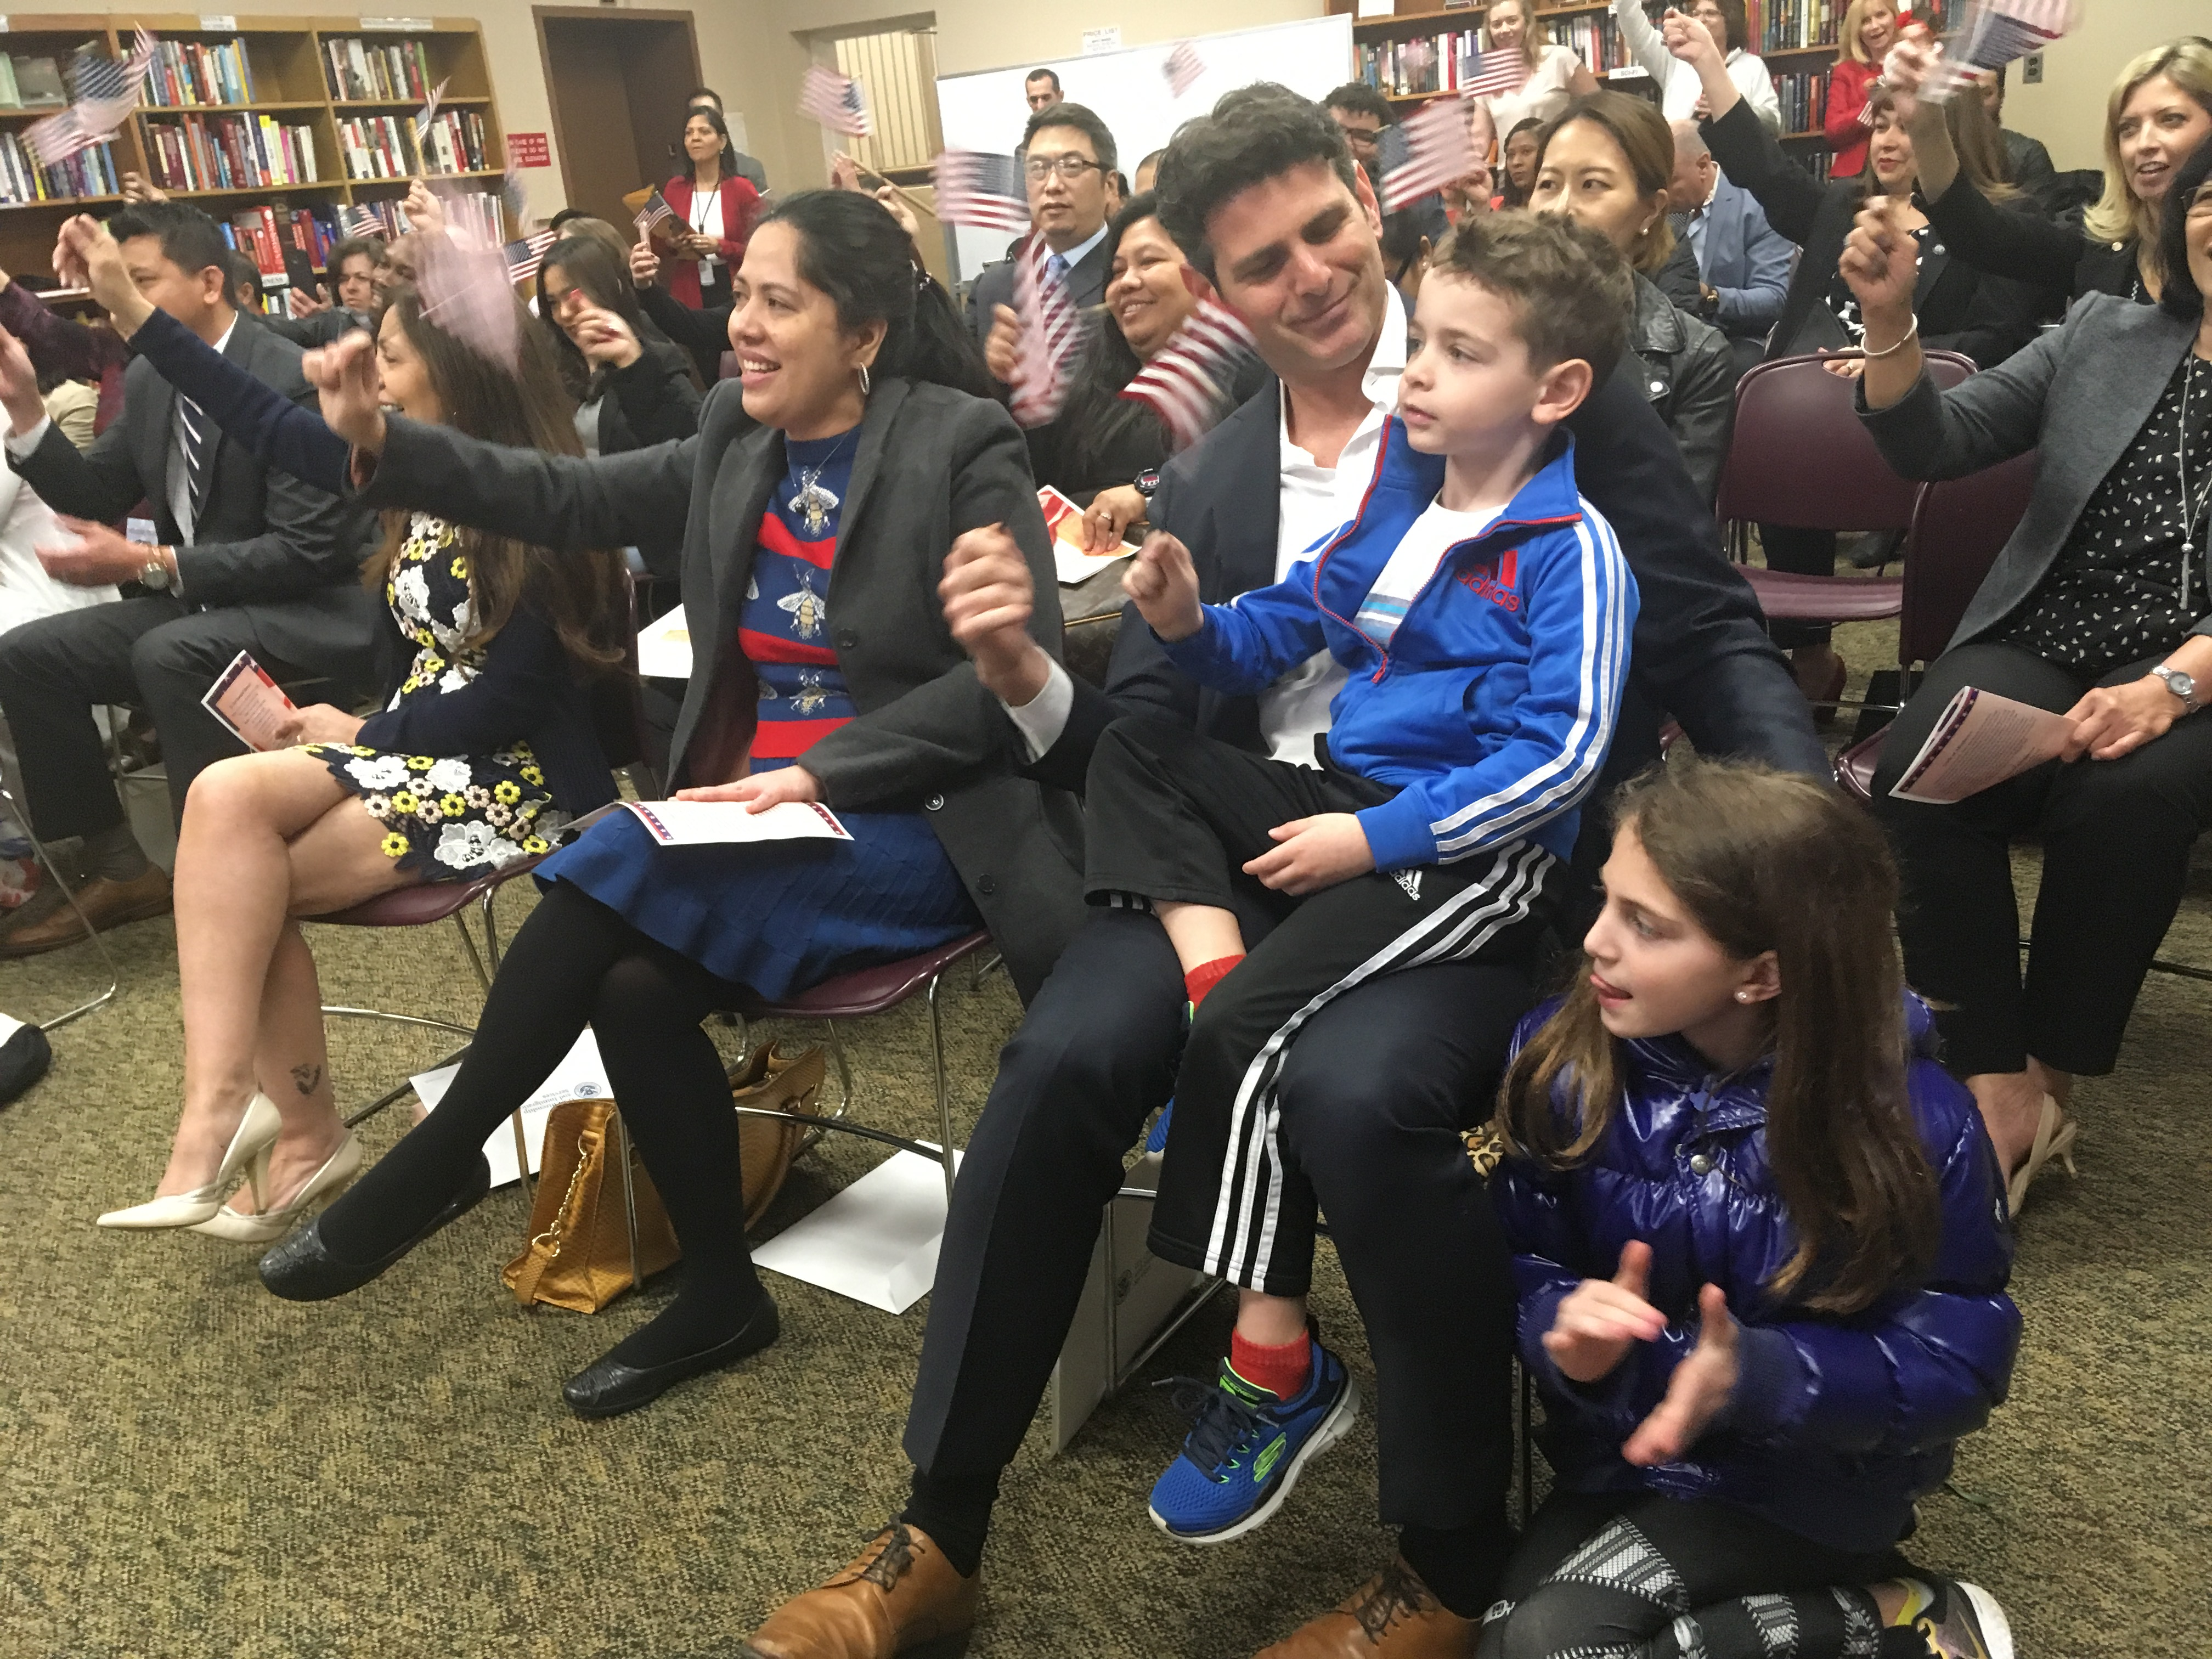 THE NEW AMERICANS: Westwood Public Library Hosts Naturalization Ceremony